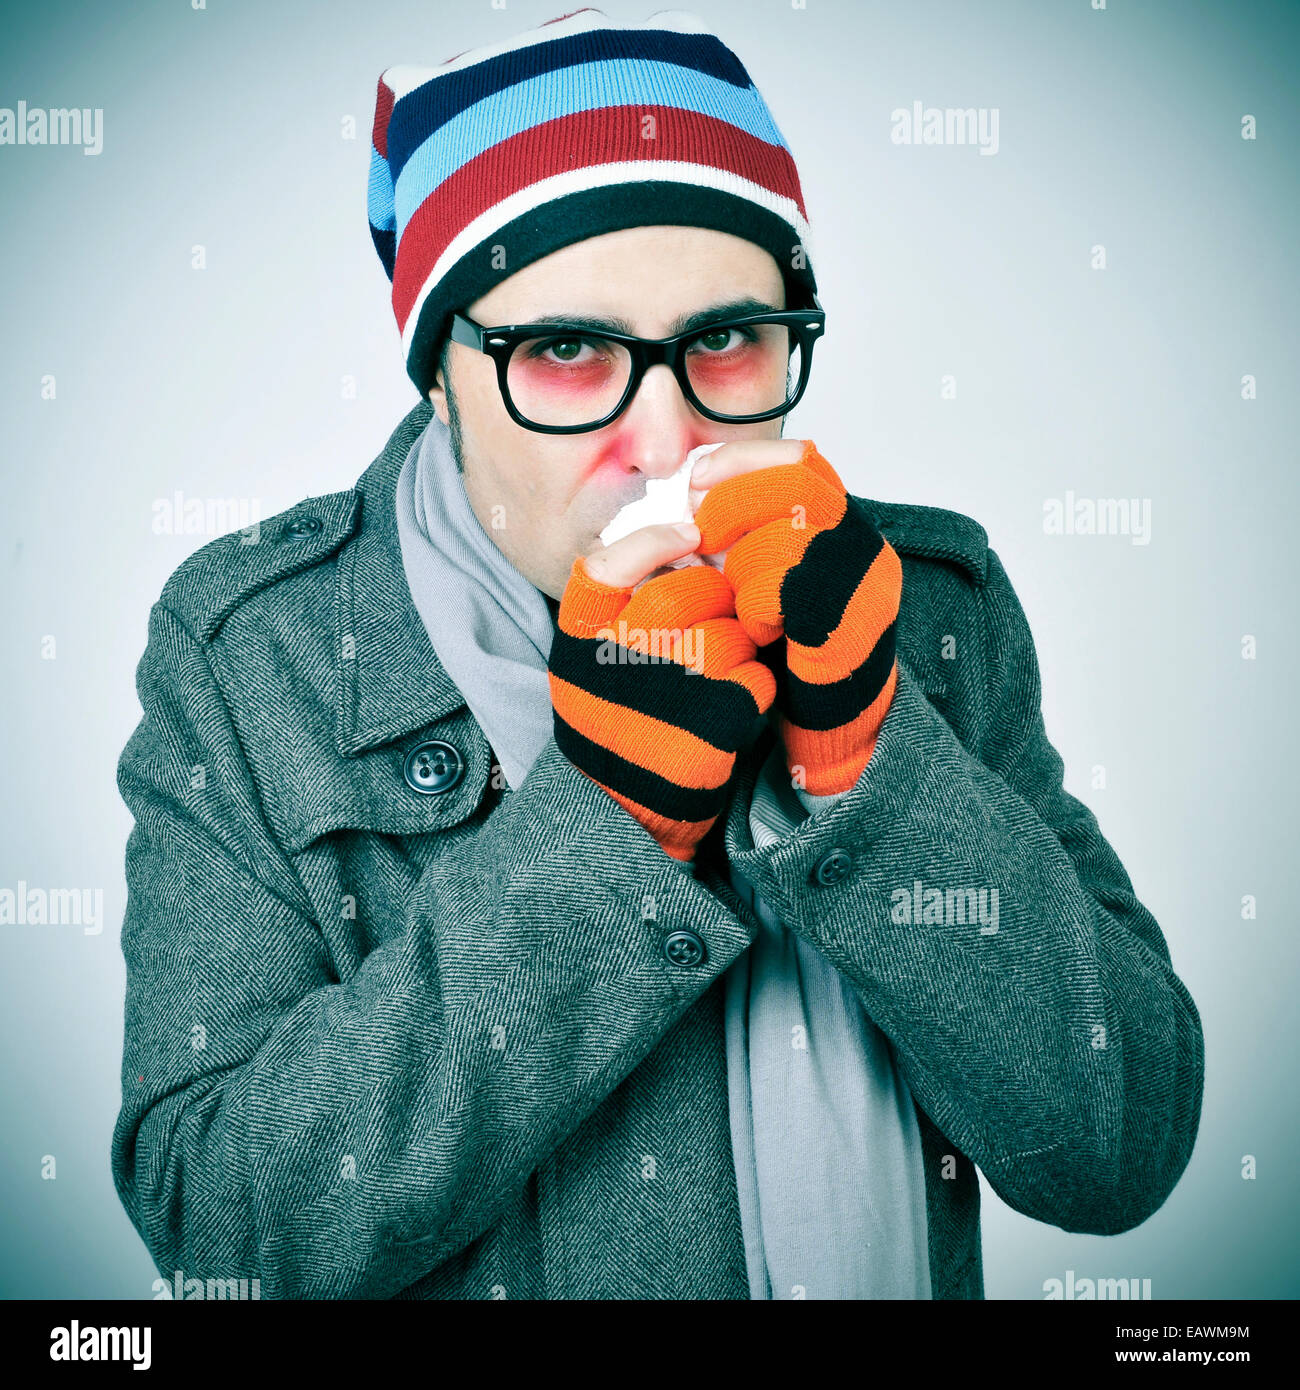 a man with a cold bundled up in a coat, knit cap, gloves and scarf - Stock Image